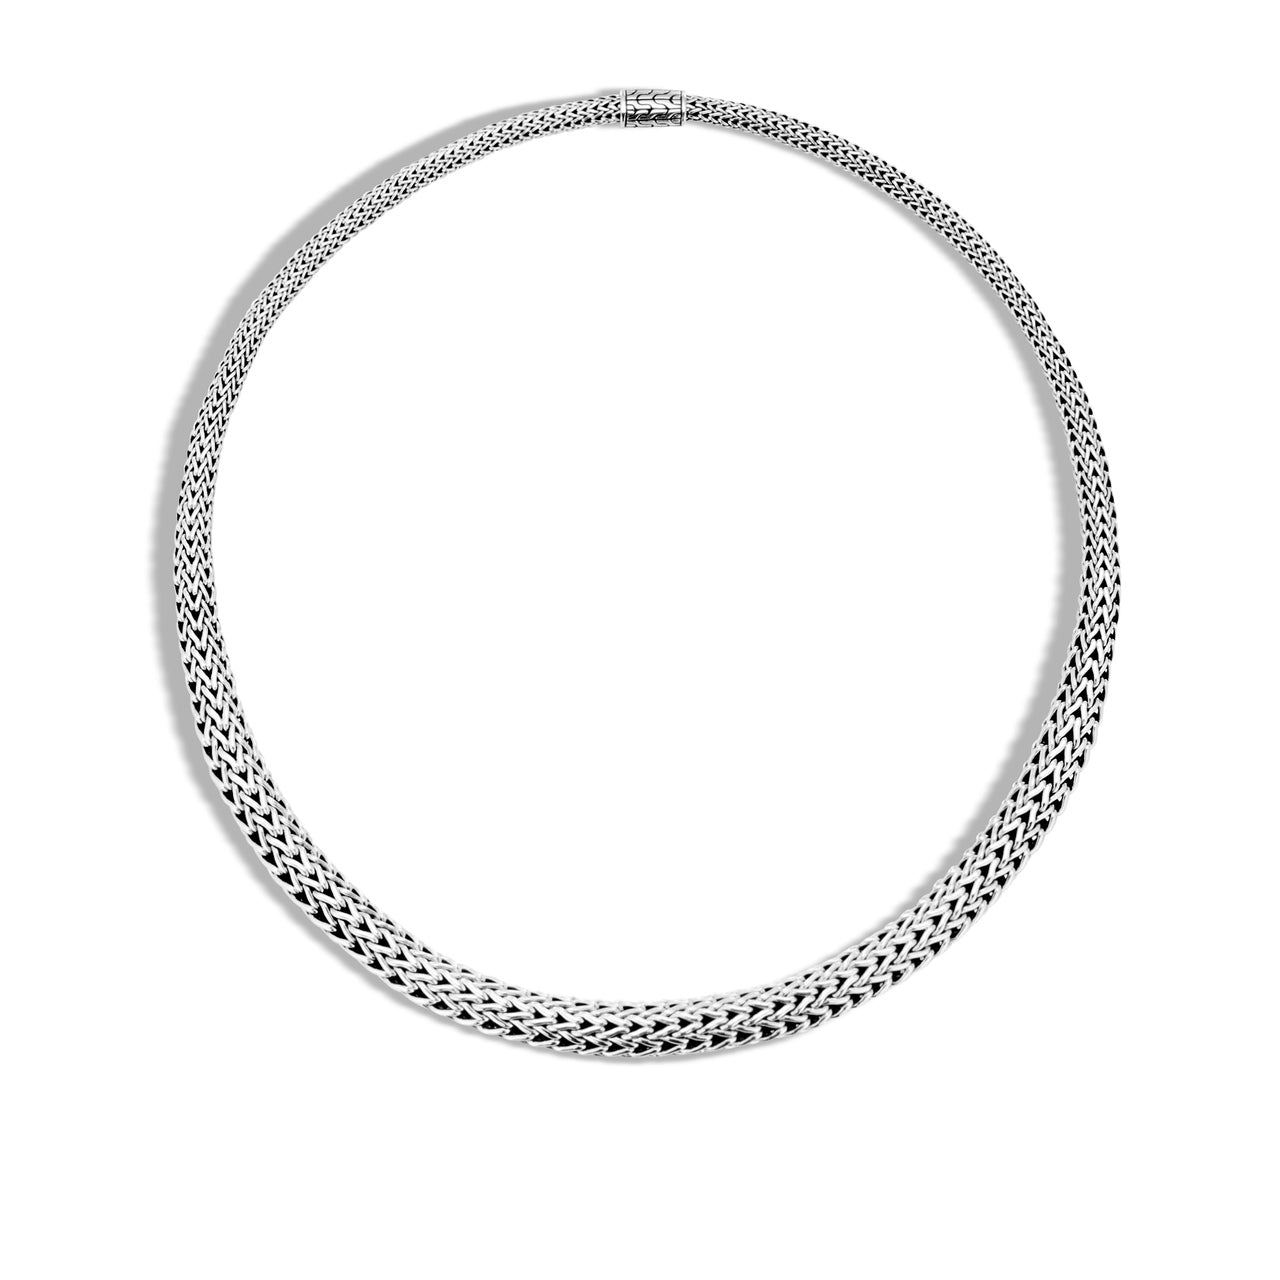 John Hardy Classic Chain 8.5mm Sterling Silver Graduated Necklace